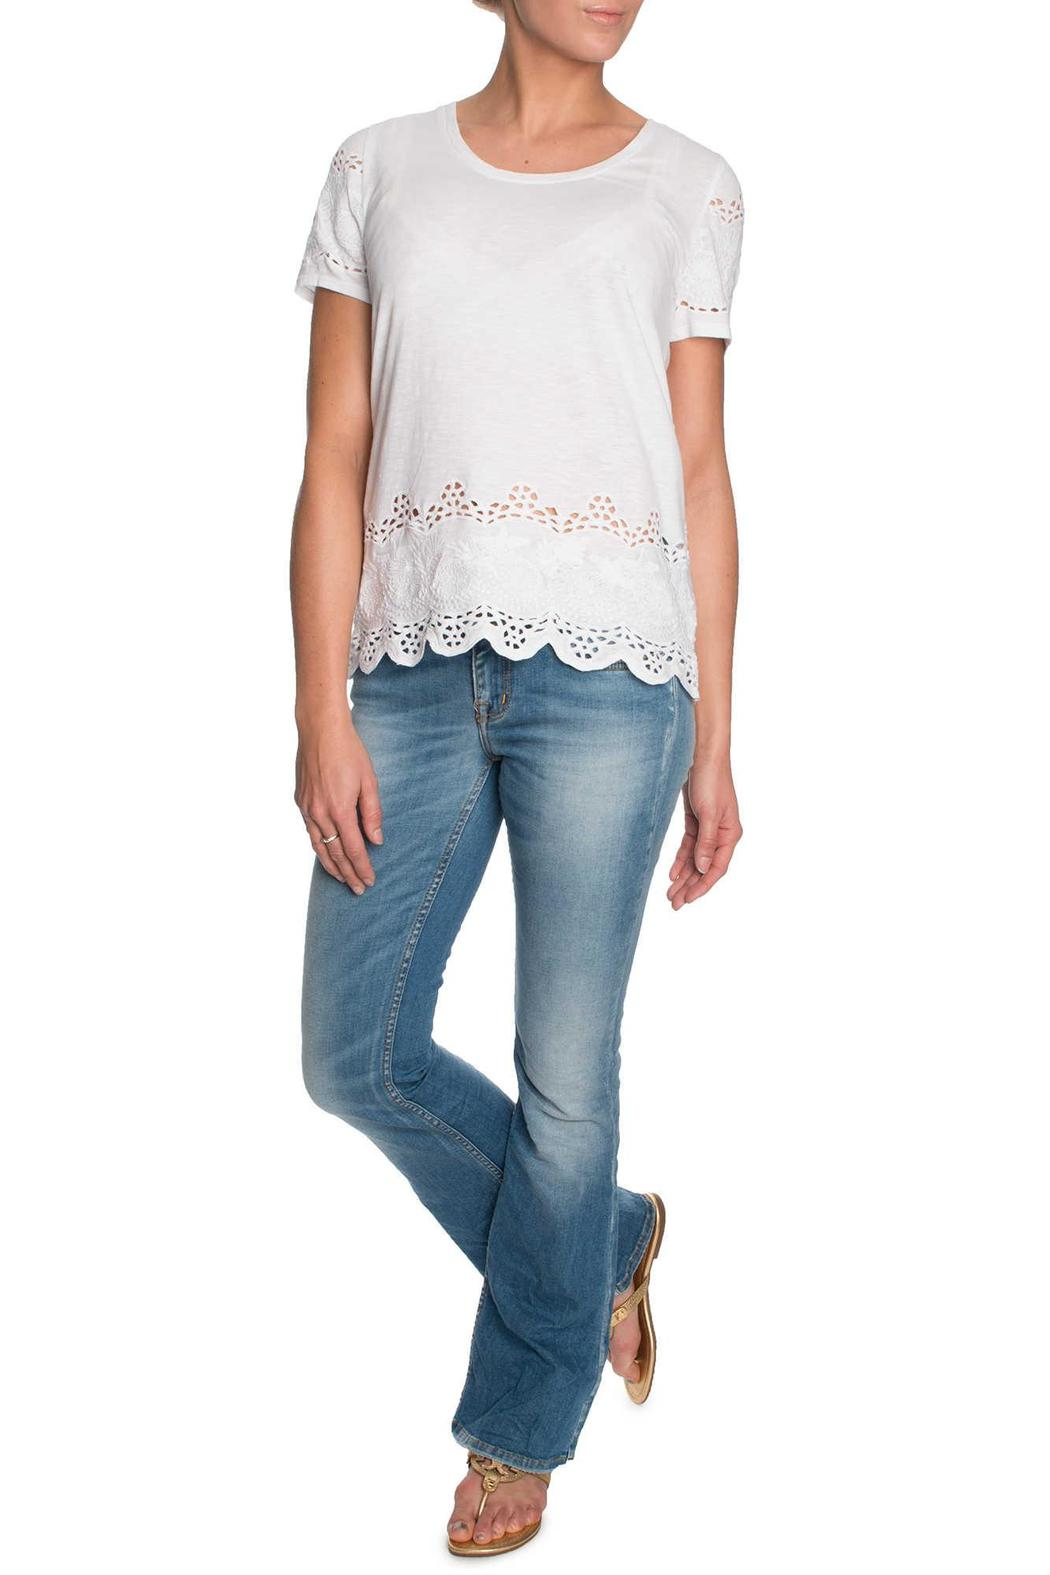 Michael by Michael Kors Lace Cutout Shirt - Side Cropped Image